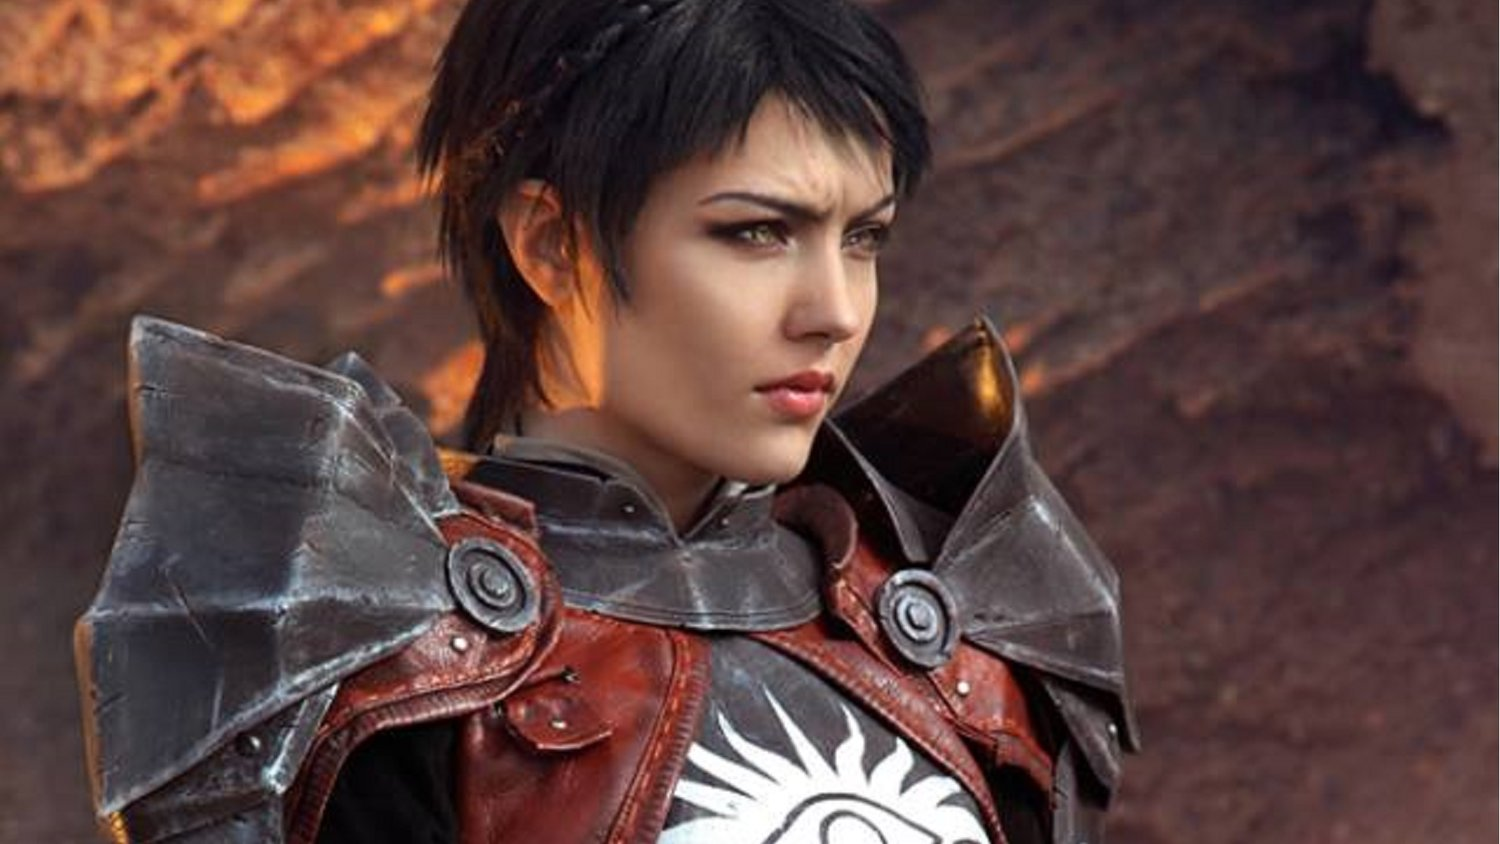 This Cosplayer Is Literally Cassandra Pentaghast From DRAGON AGE